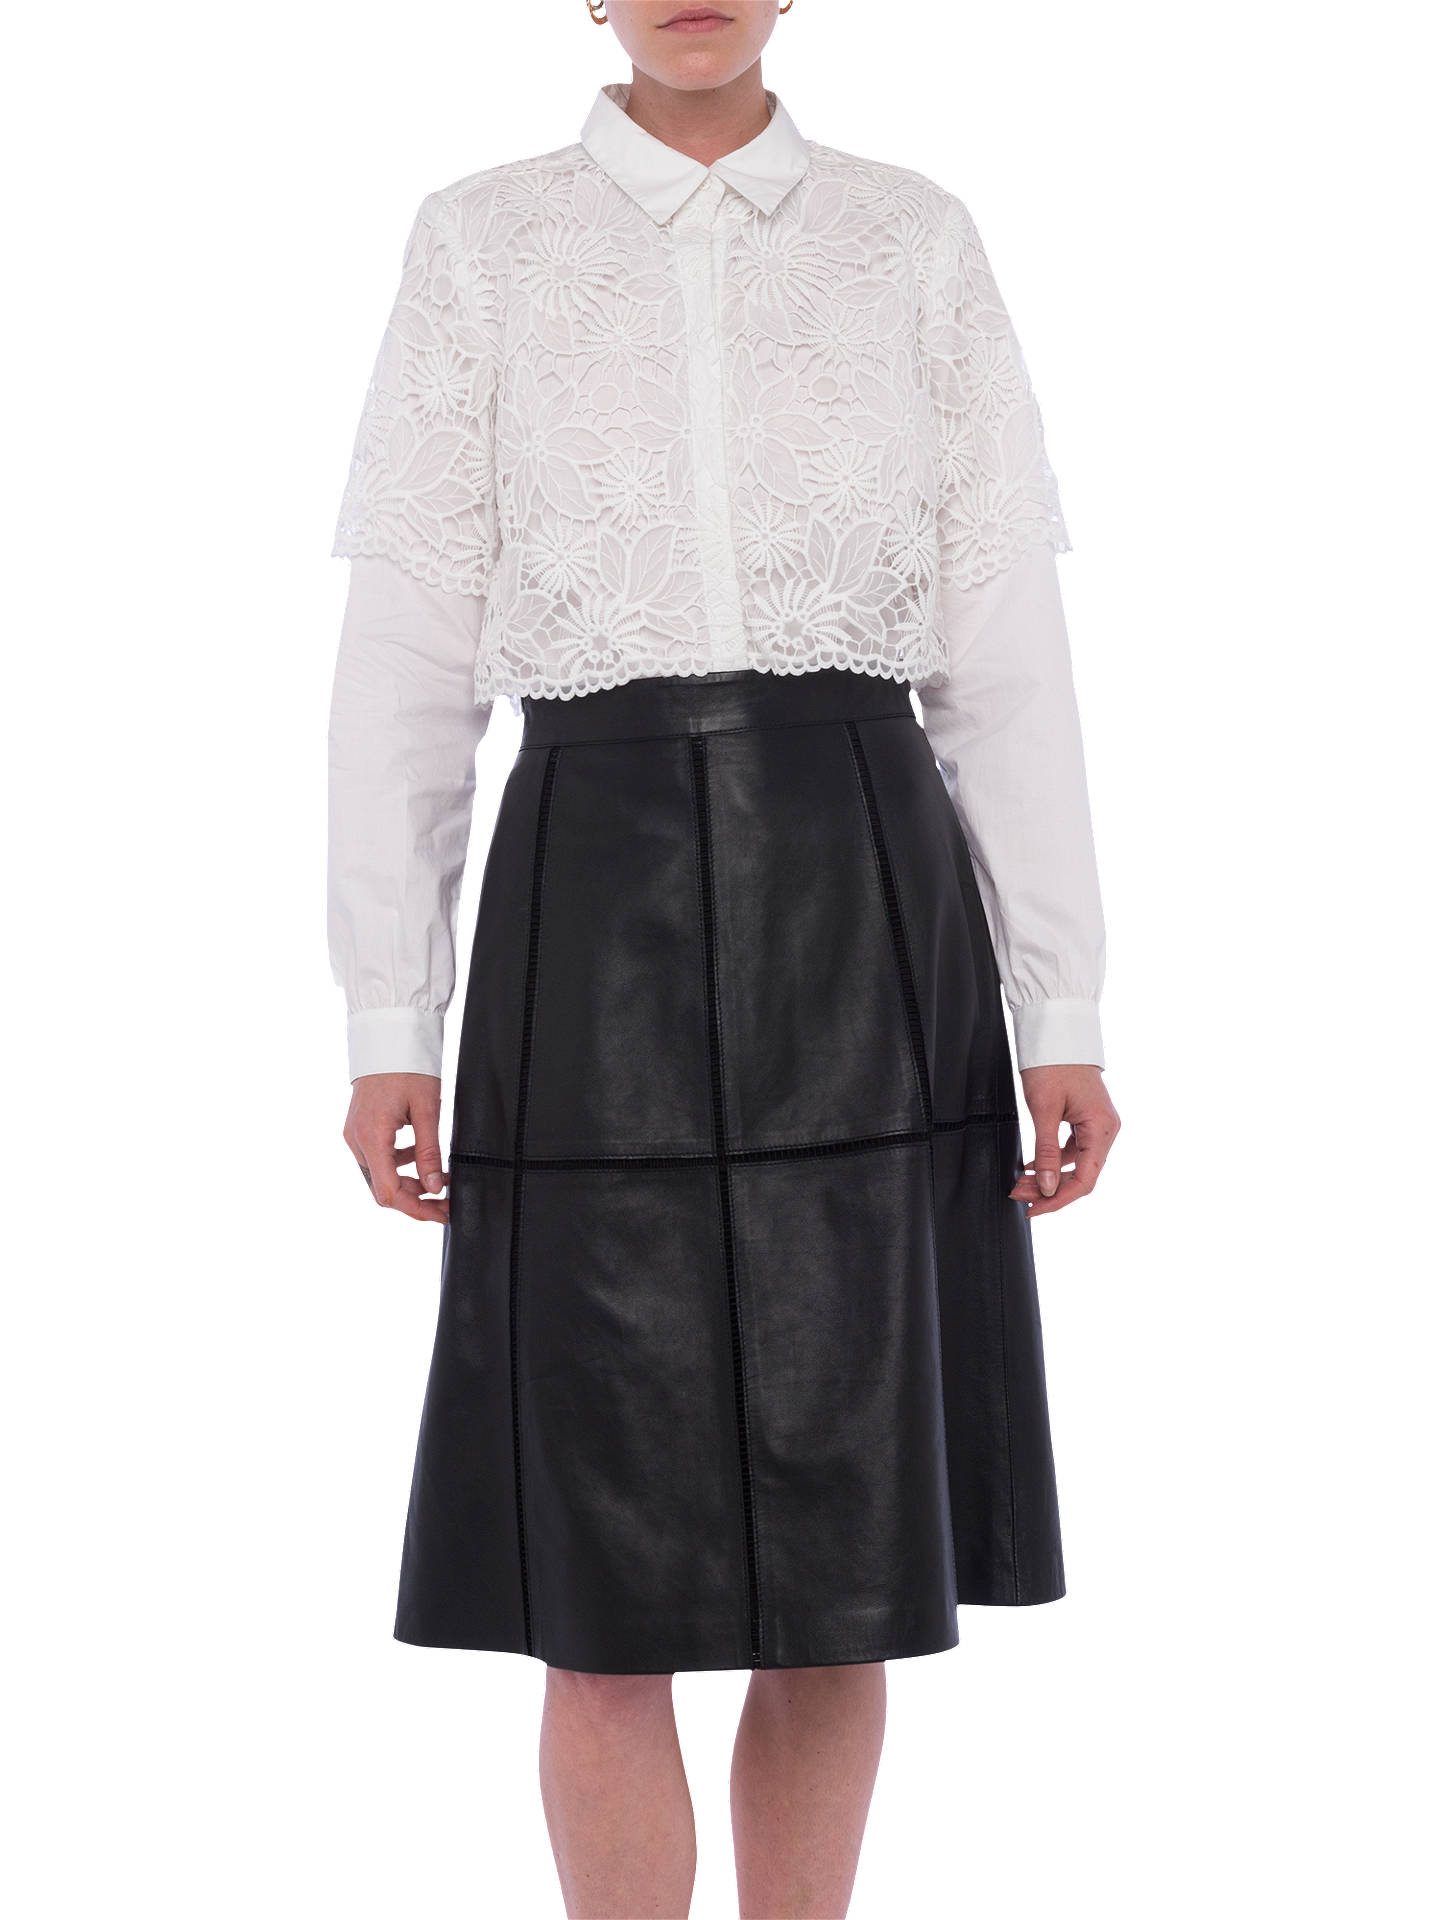 BuyFrench Connection Gizo Leather A-Line Skirt, Black, 6 Online at johnlewis.com